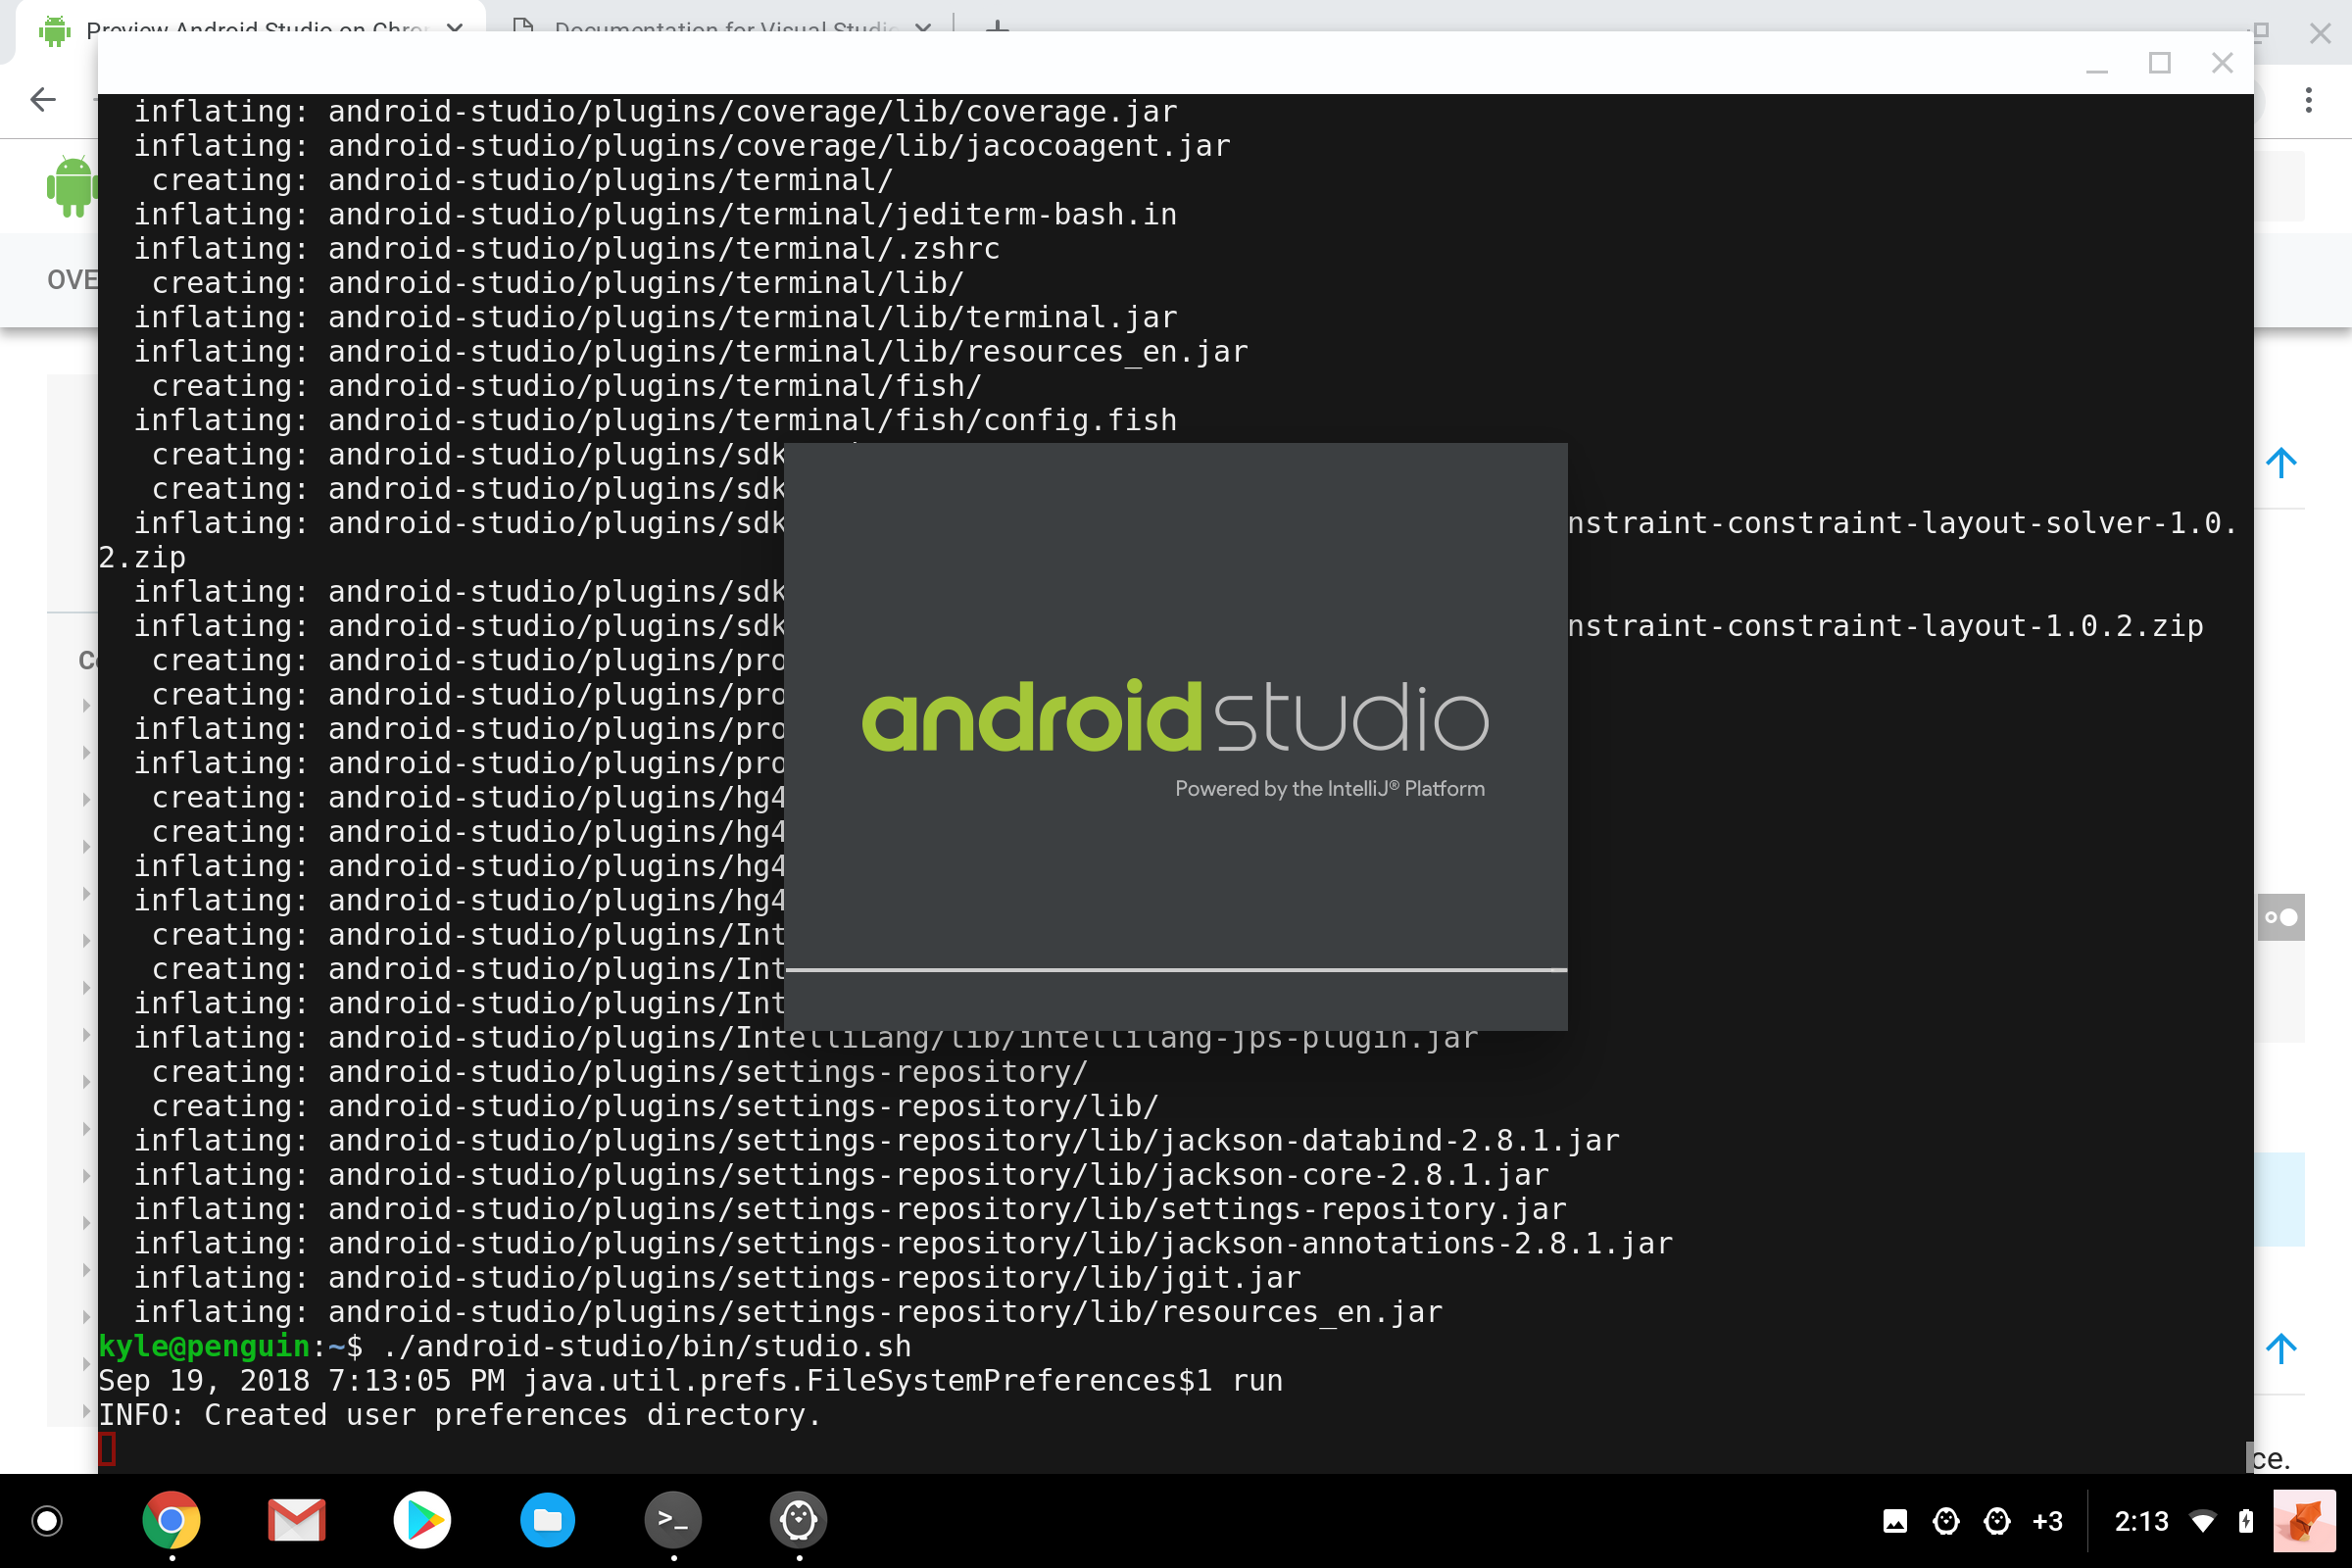 How to install Android Studio on Chrome OS - 9to5Google